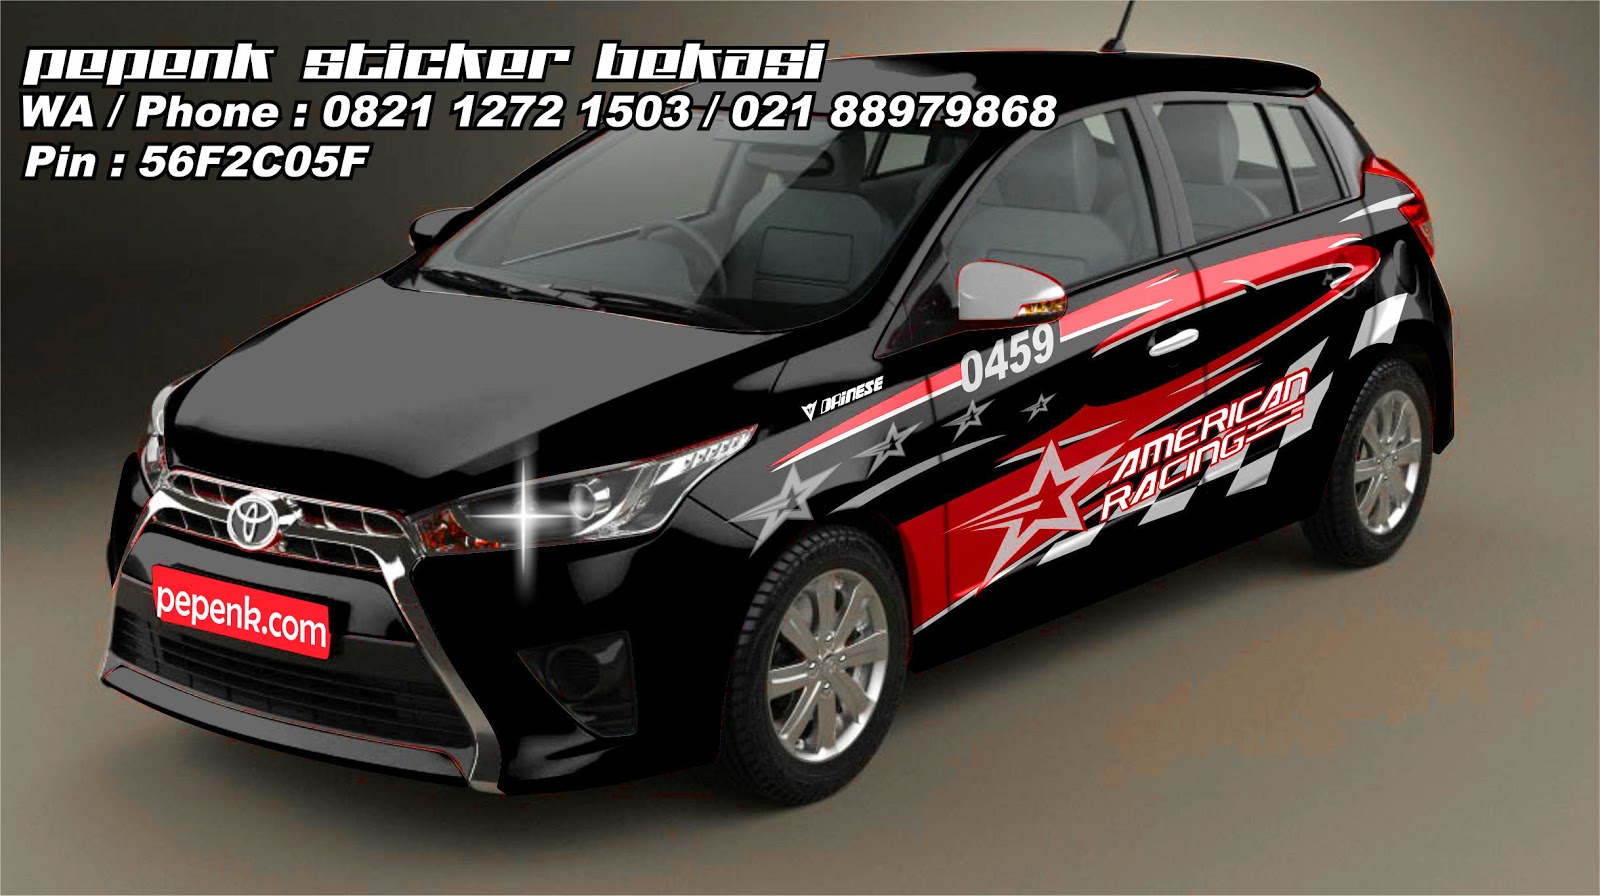 CUTTING STICKER HONDA MOBILIO | King Sticker bali